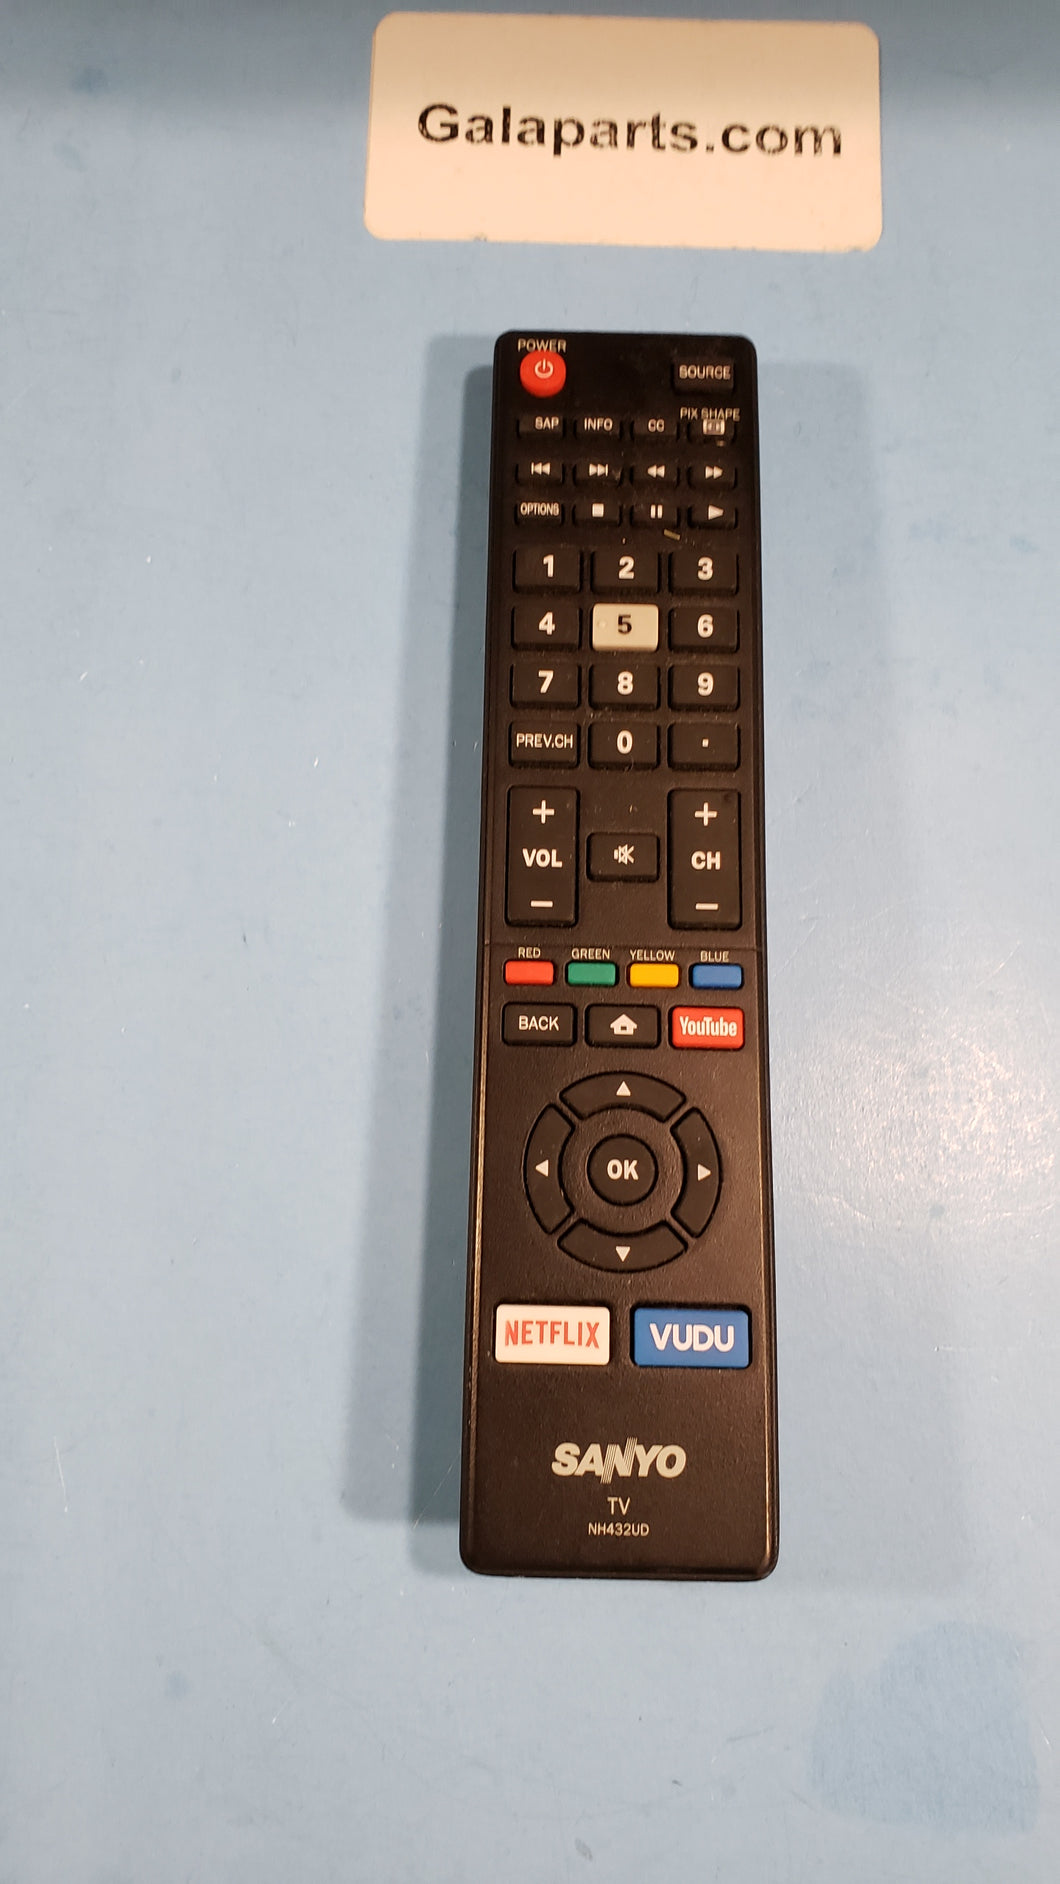 NC432UD remote control for SANYO TV FW65C78F - Electronics TV Parts - GalaParts.com